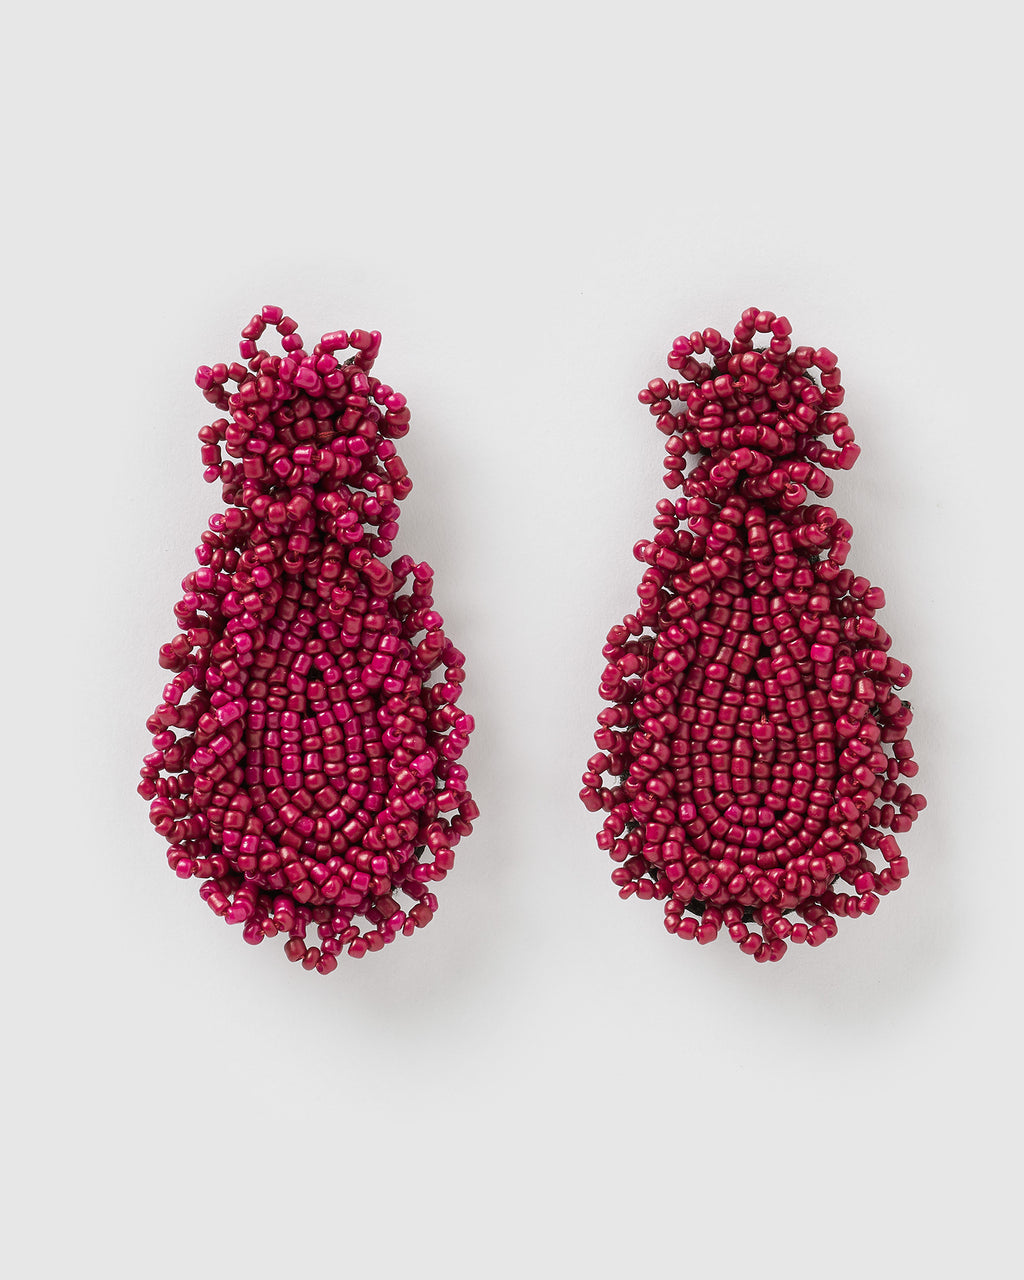 Izoa Hallie Earrings Burgundy